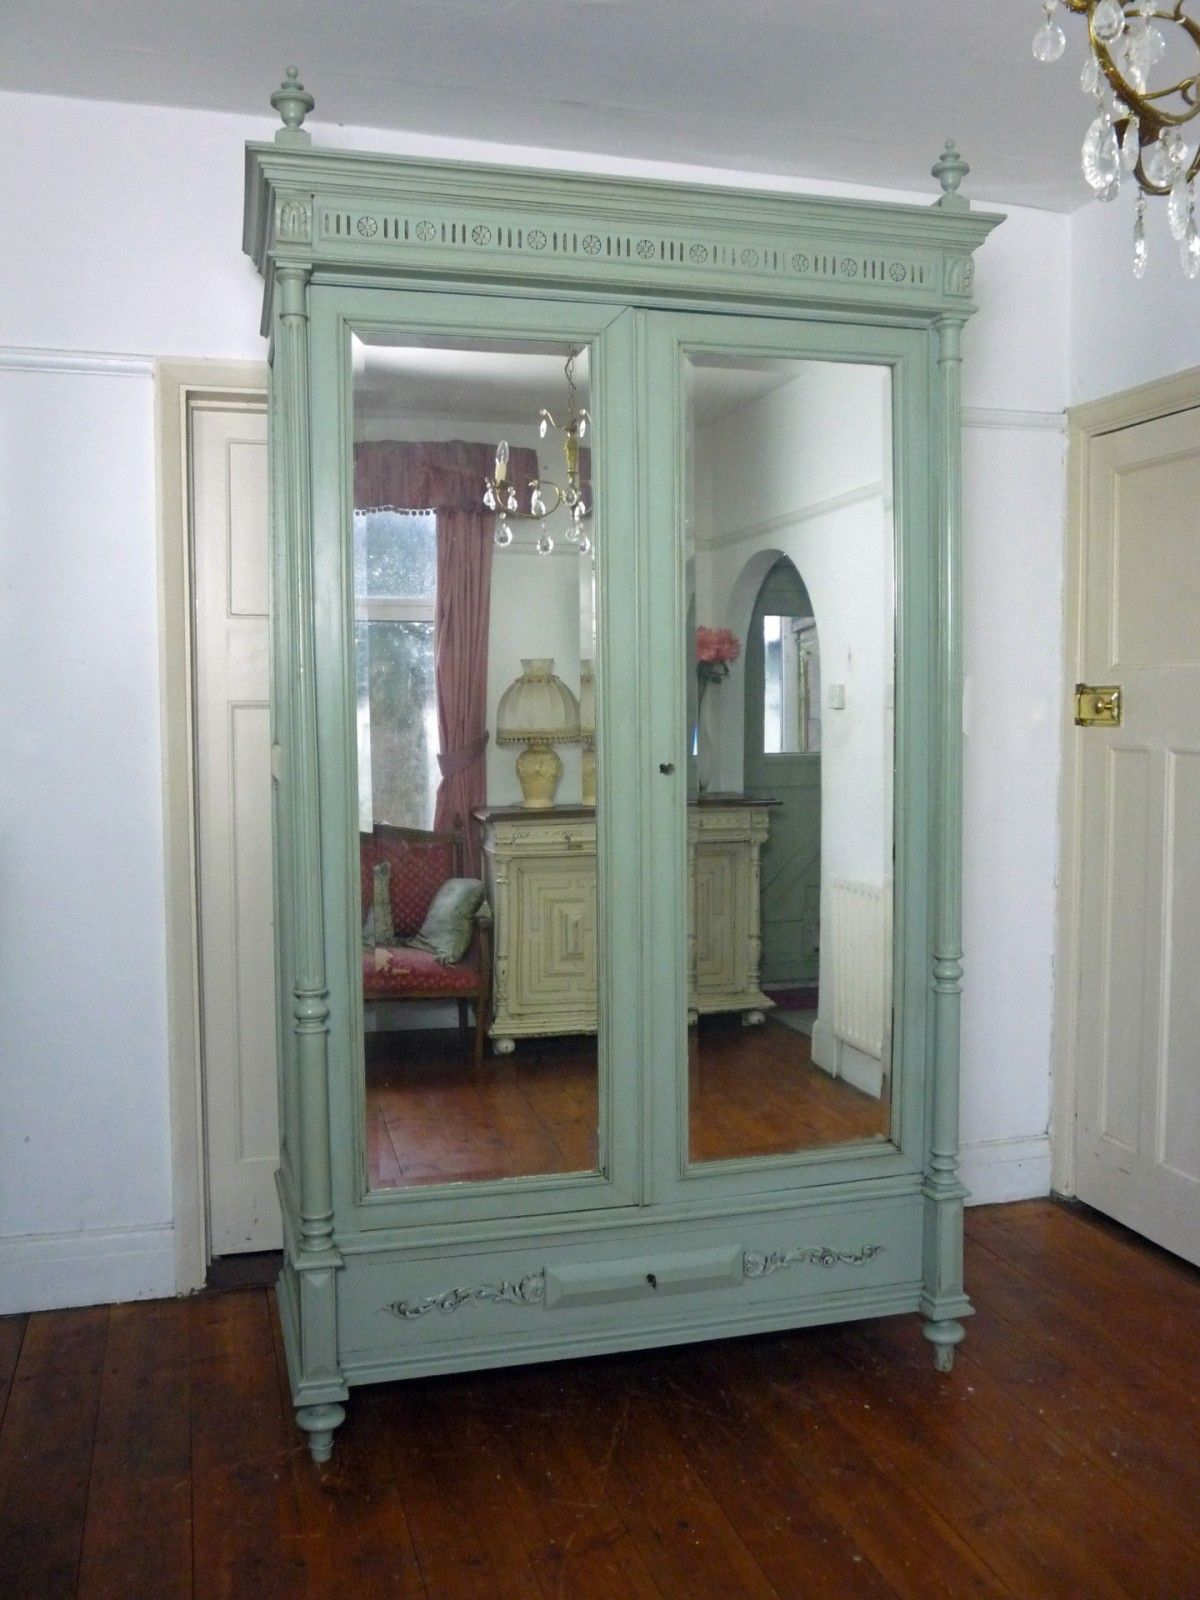 Merveilleux Antique French Inspired Mirrored Armoire | Painted Henri II Style Double Mirror  Door French Armoire